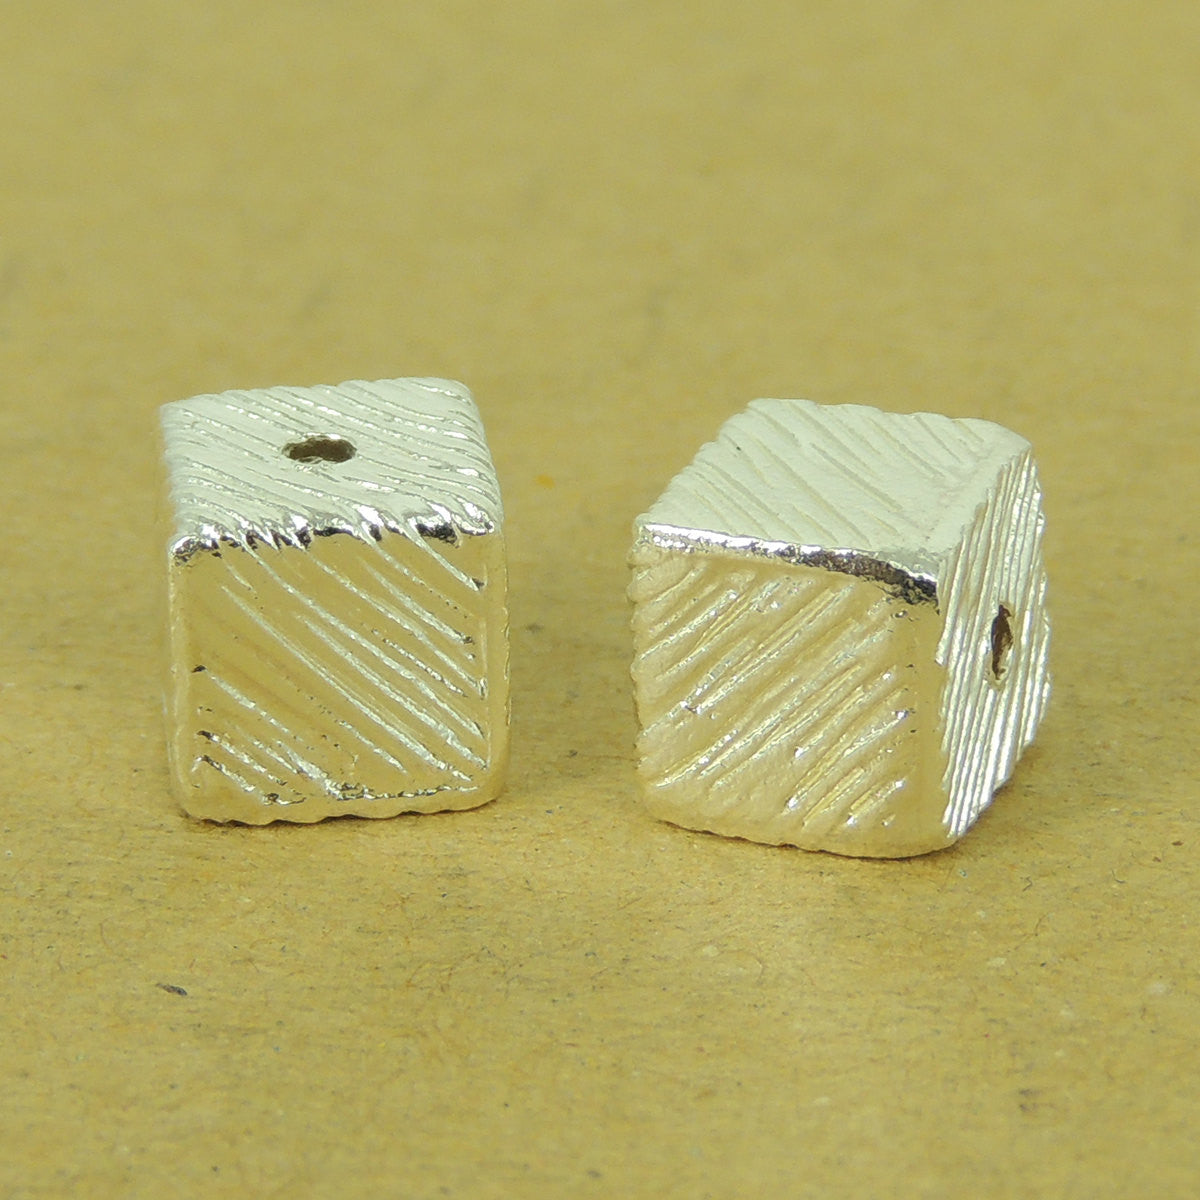 2 PCS Distressed Cube Beads - S925 Sterling Silver WSP522X2